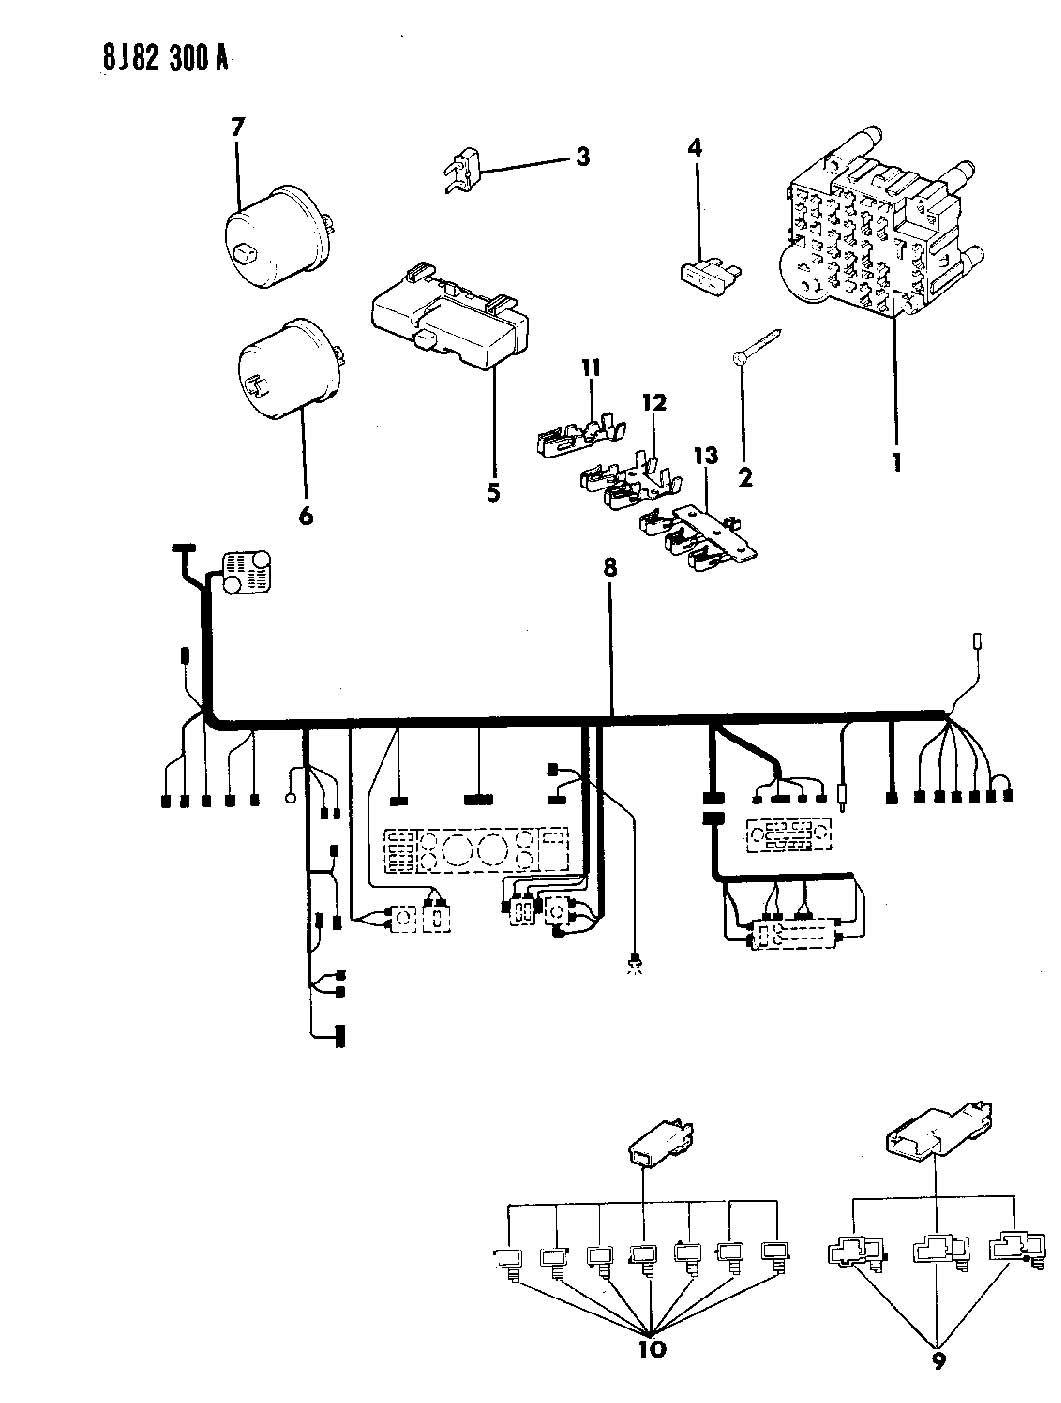 Wiring Harness Diagram For 1990 Jeep Yj Archive Of Automotive Tj Wrangler 89 Wiper Schematic Diagrams Rh Ogmconsulting Co